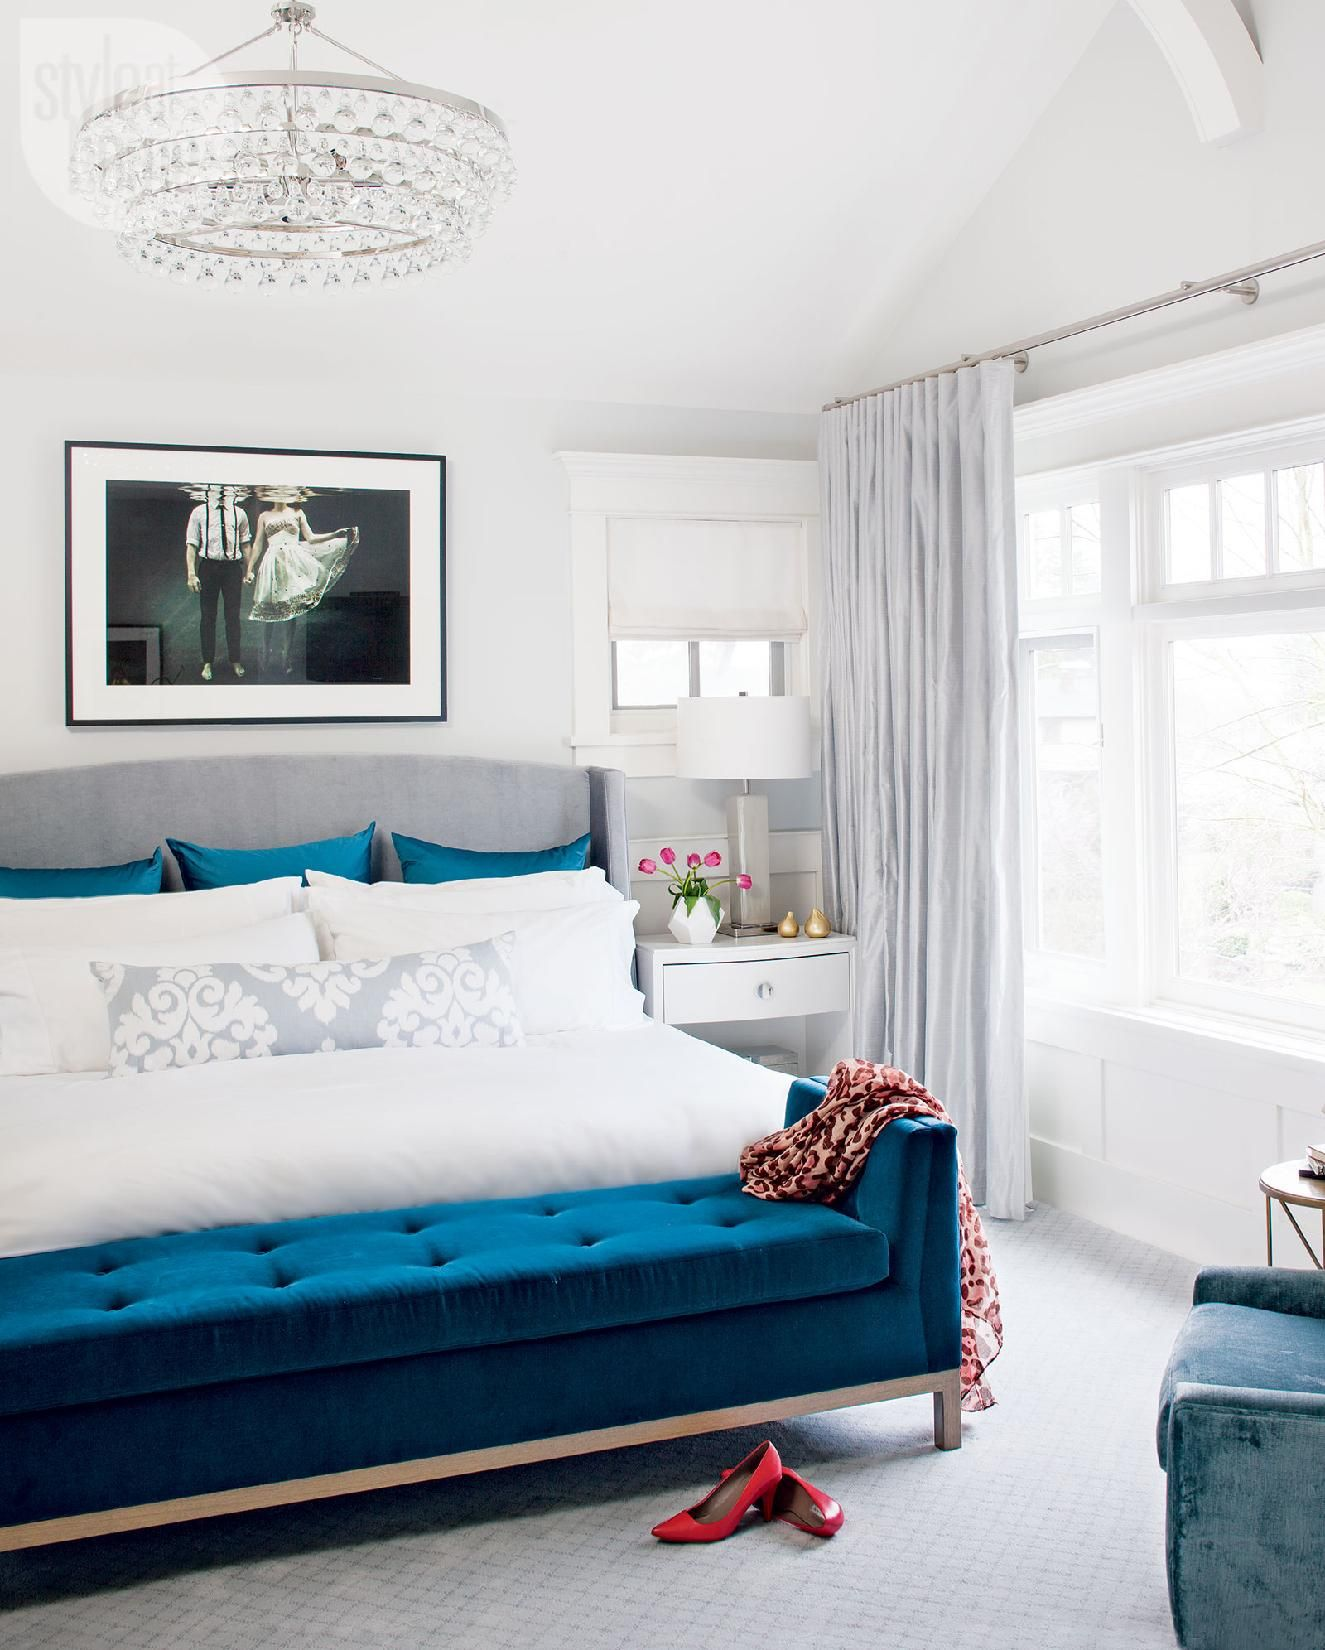 Bedroom Closet Design Ideas Newlywed Bedroom Decor Cosy Bedroom Colours Bedroom Ceiling Curtains: House Tour: Cozy And Contemporary Family Home